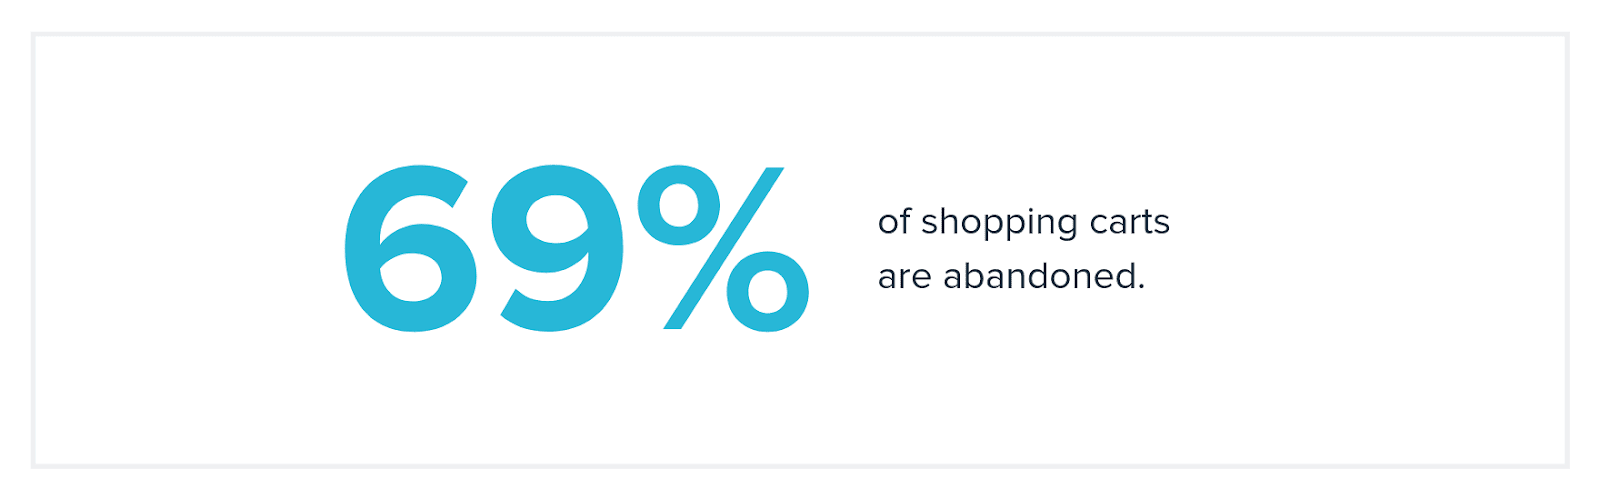 percentage of abandoned shopping carts 2019 merchandising hacks